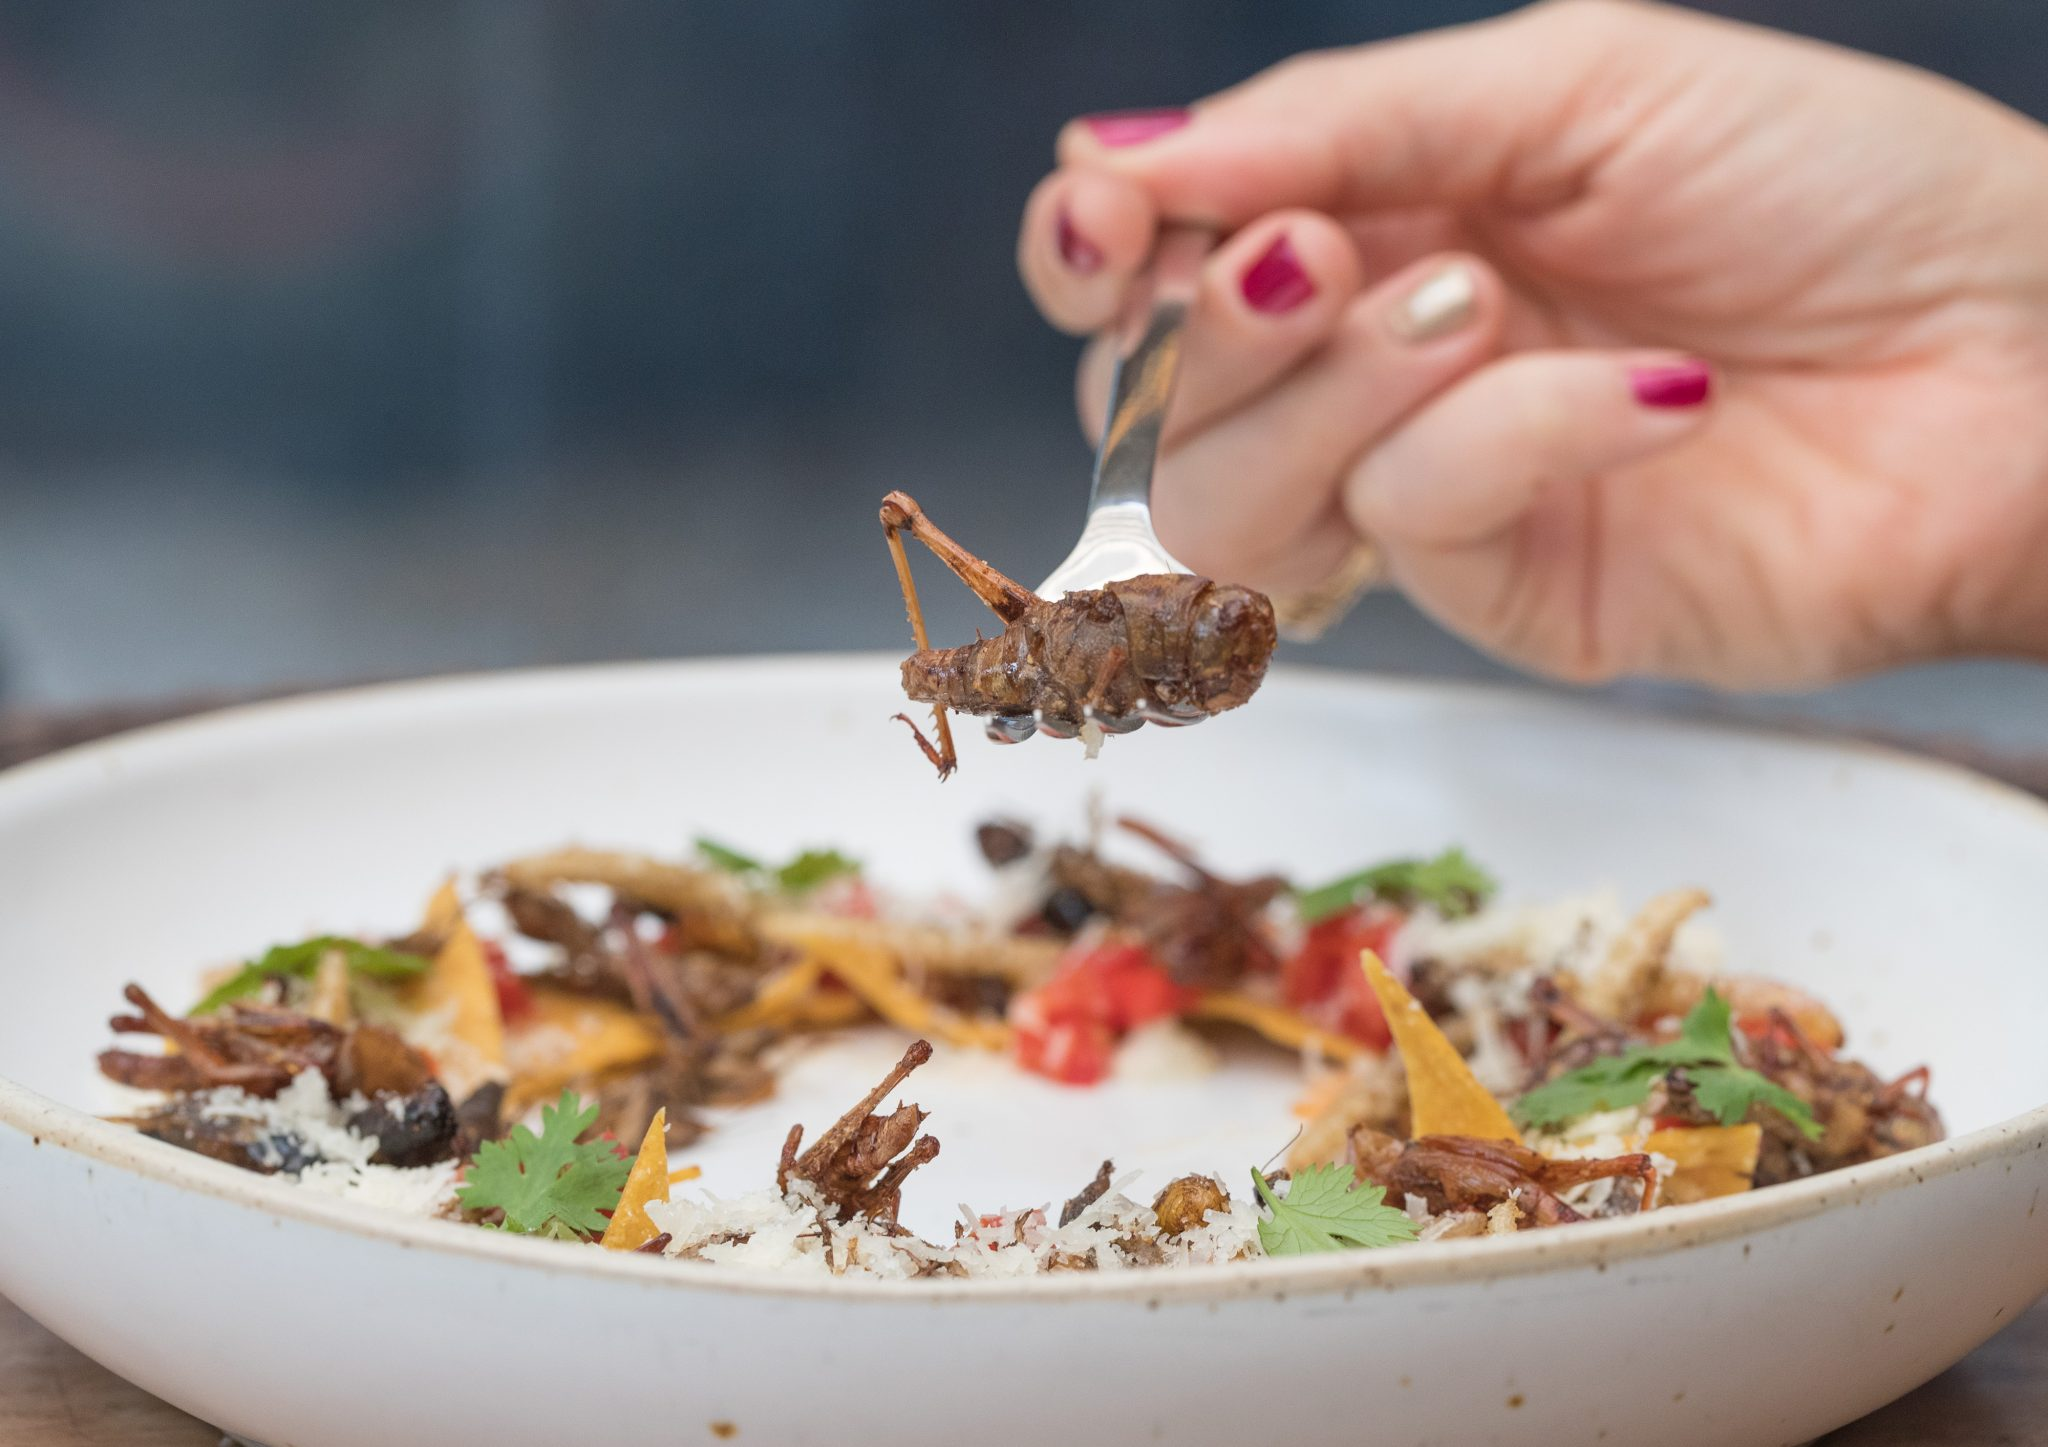 Crunch on crunch: The nachos feature deep-fried grasshoppers, crickets, silkworms and bamboo caterpillars. Photo by Stan Lee/KCRW